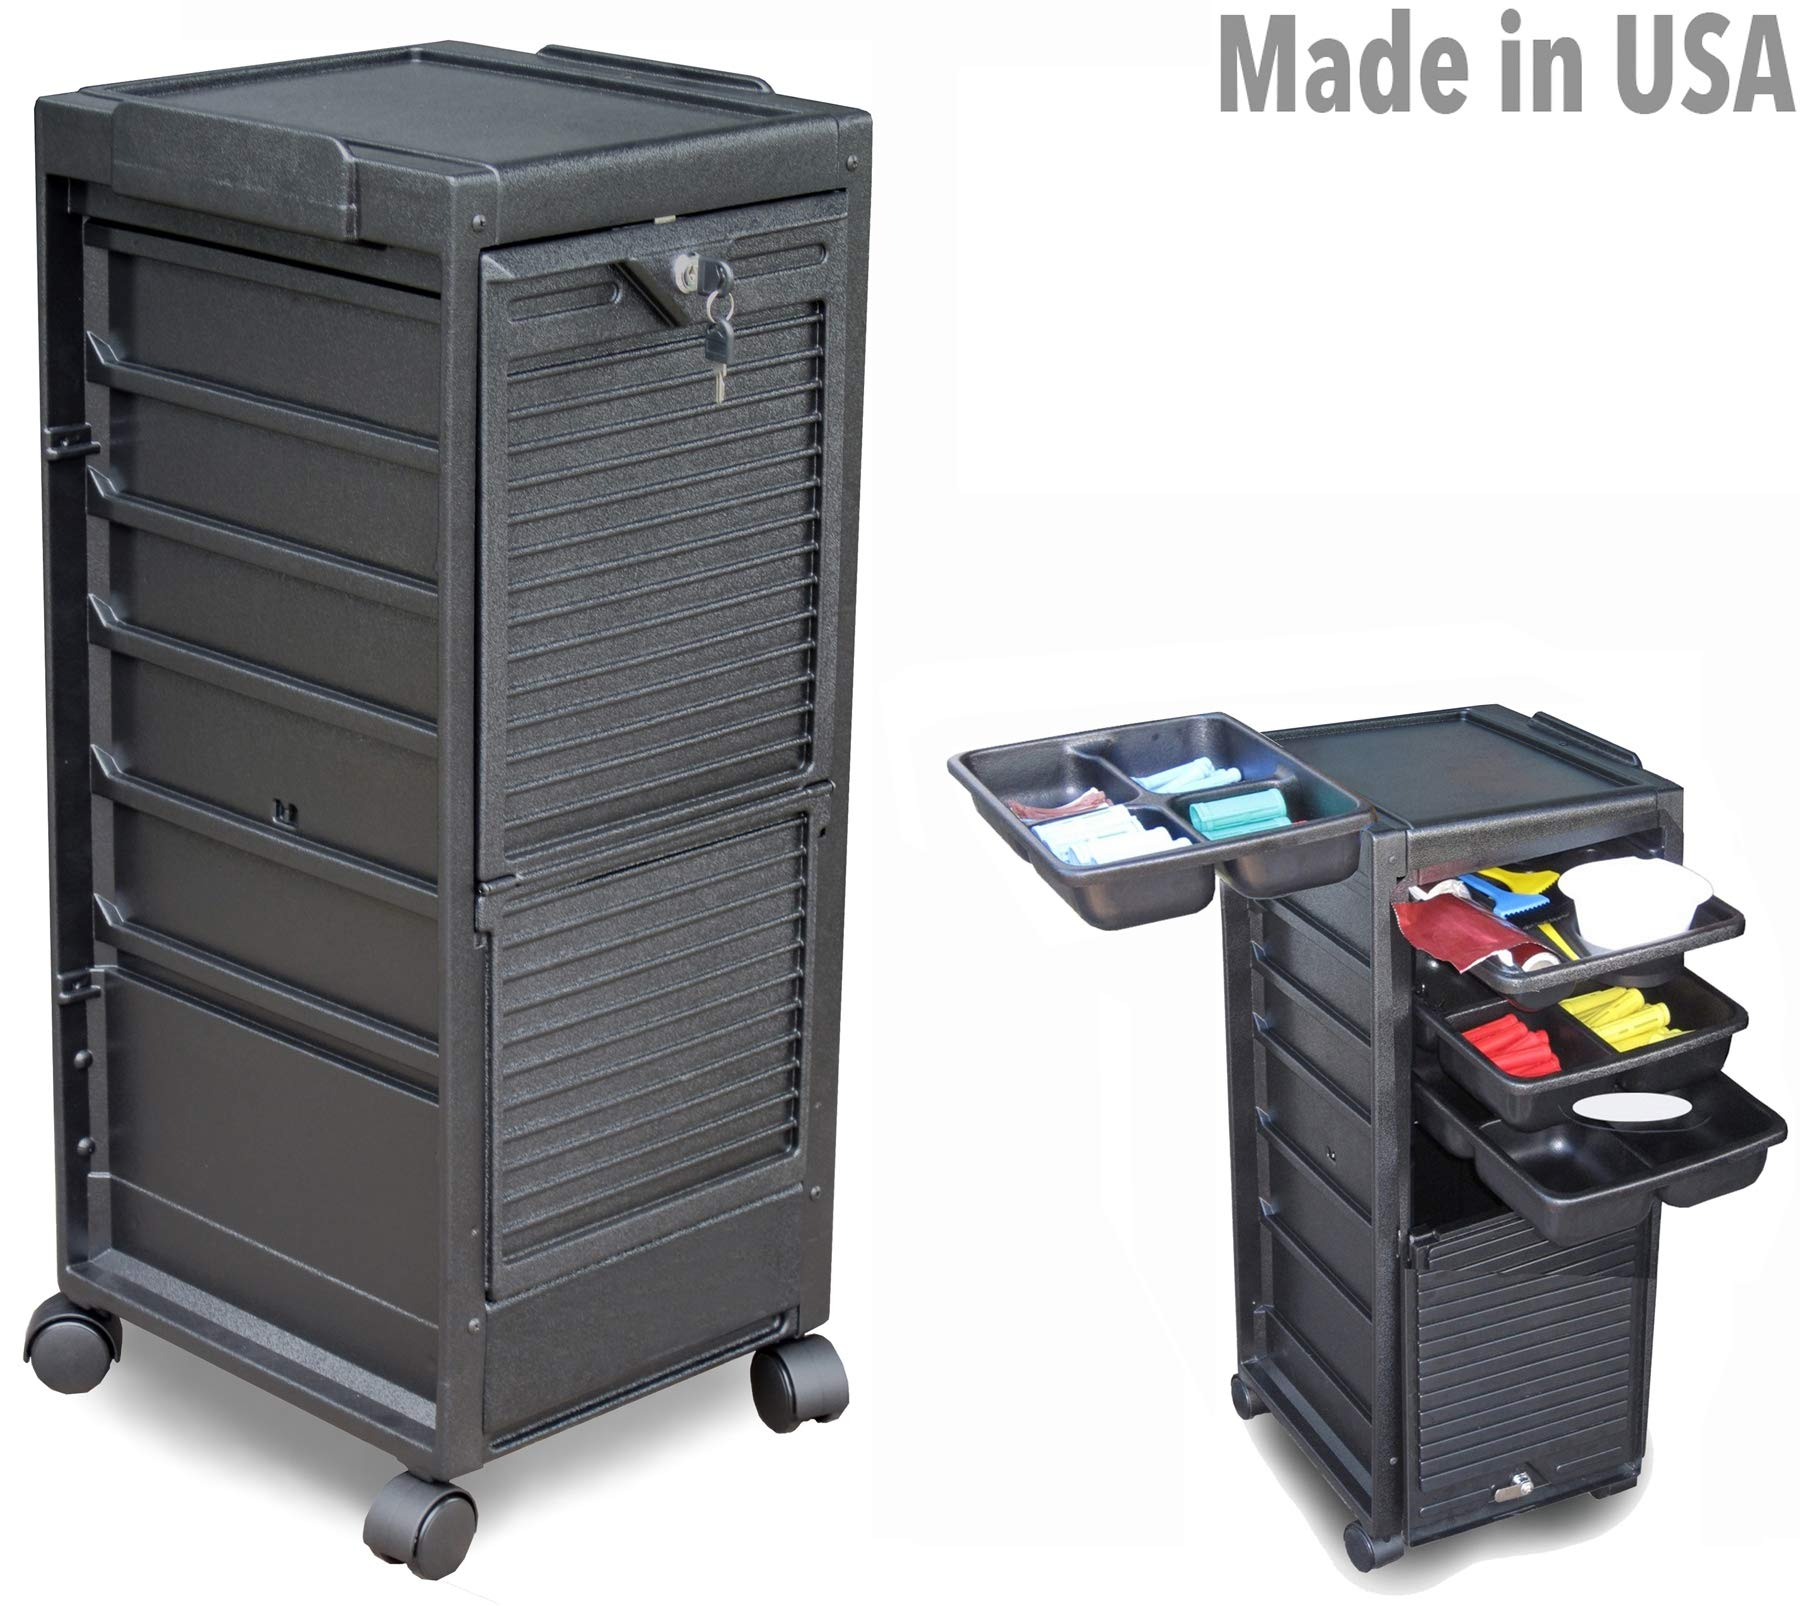 G3-KD Salon SPA Rollabout Trolley Cart Lockable Made in USA by Dina Meri by Dina Meri